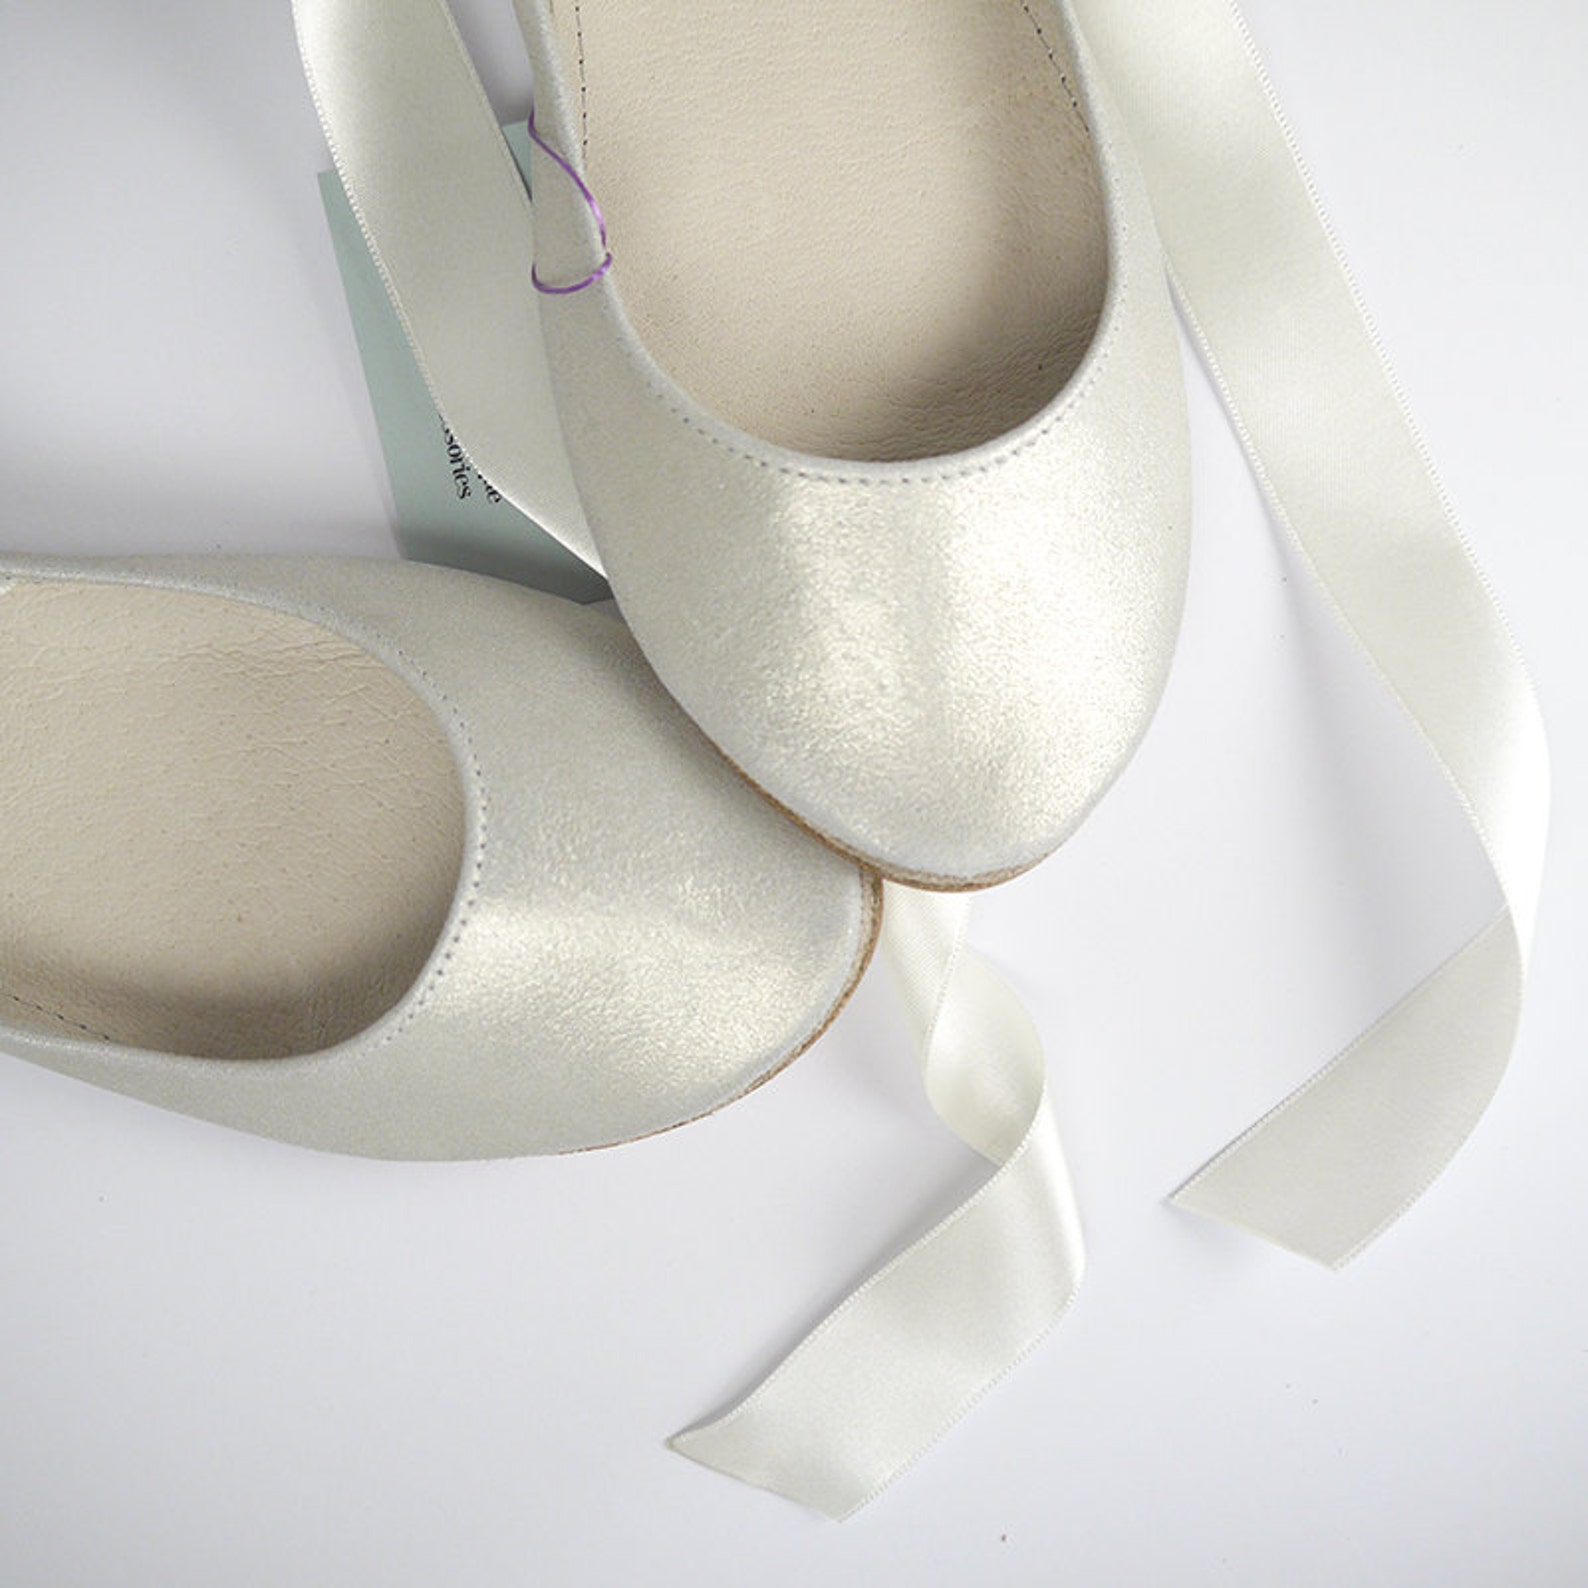 bridal low heel ballet flats shoes in ivory leather and satin ribbons, wedding shoes flats, elehandmade shoes, scarpe sposa, bra